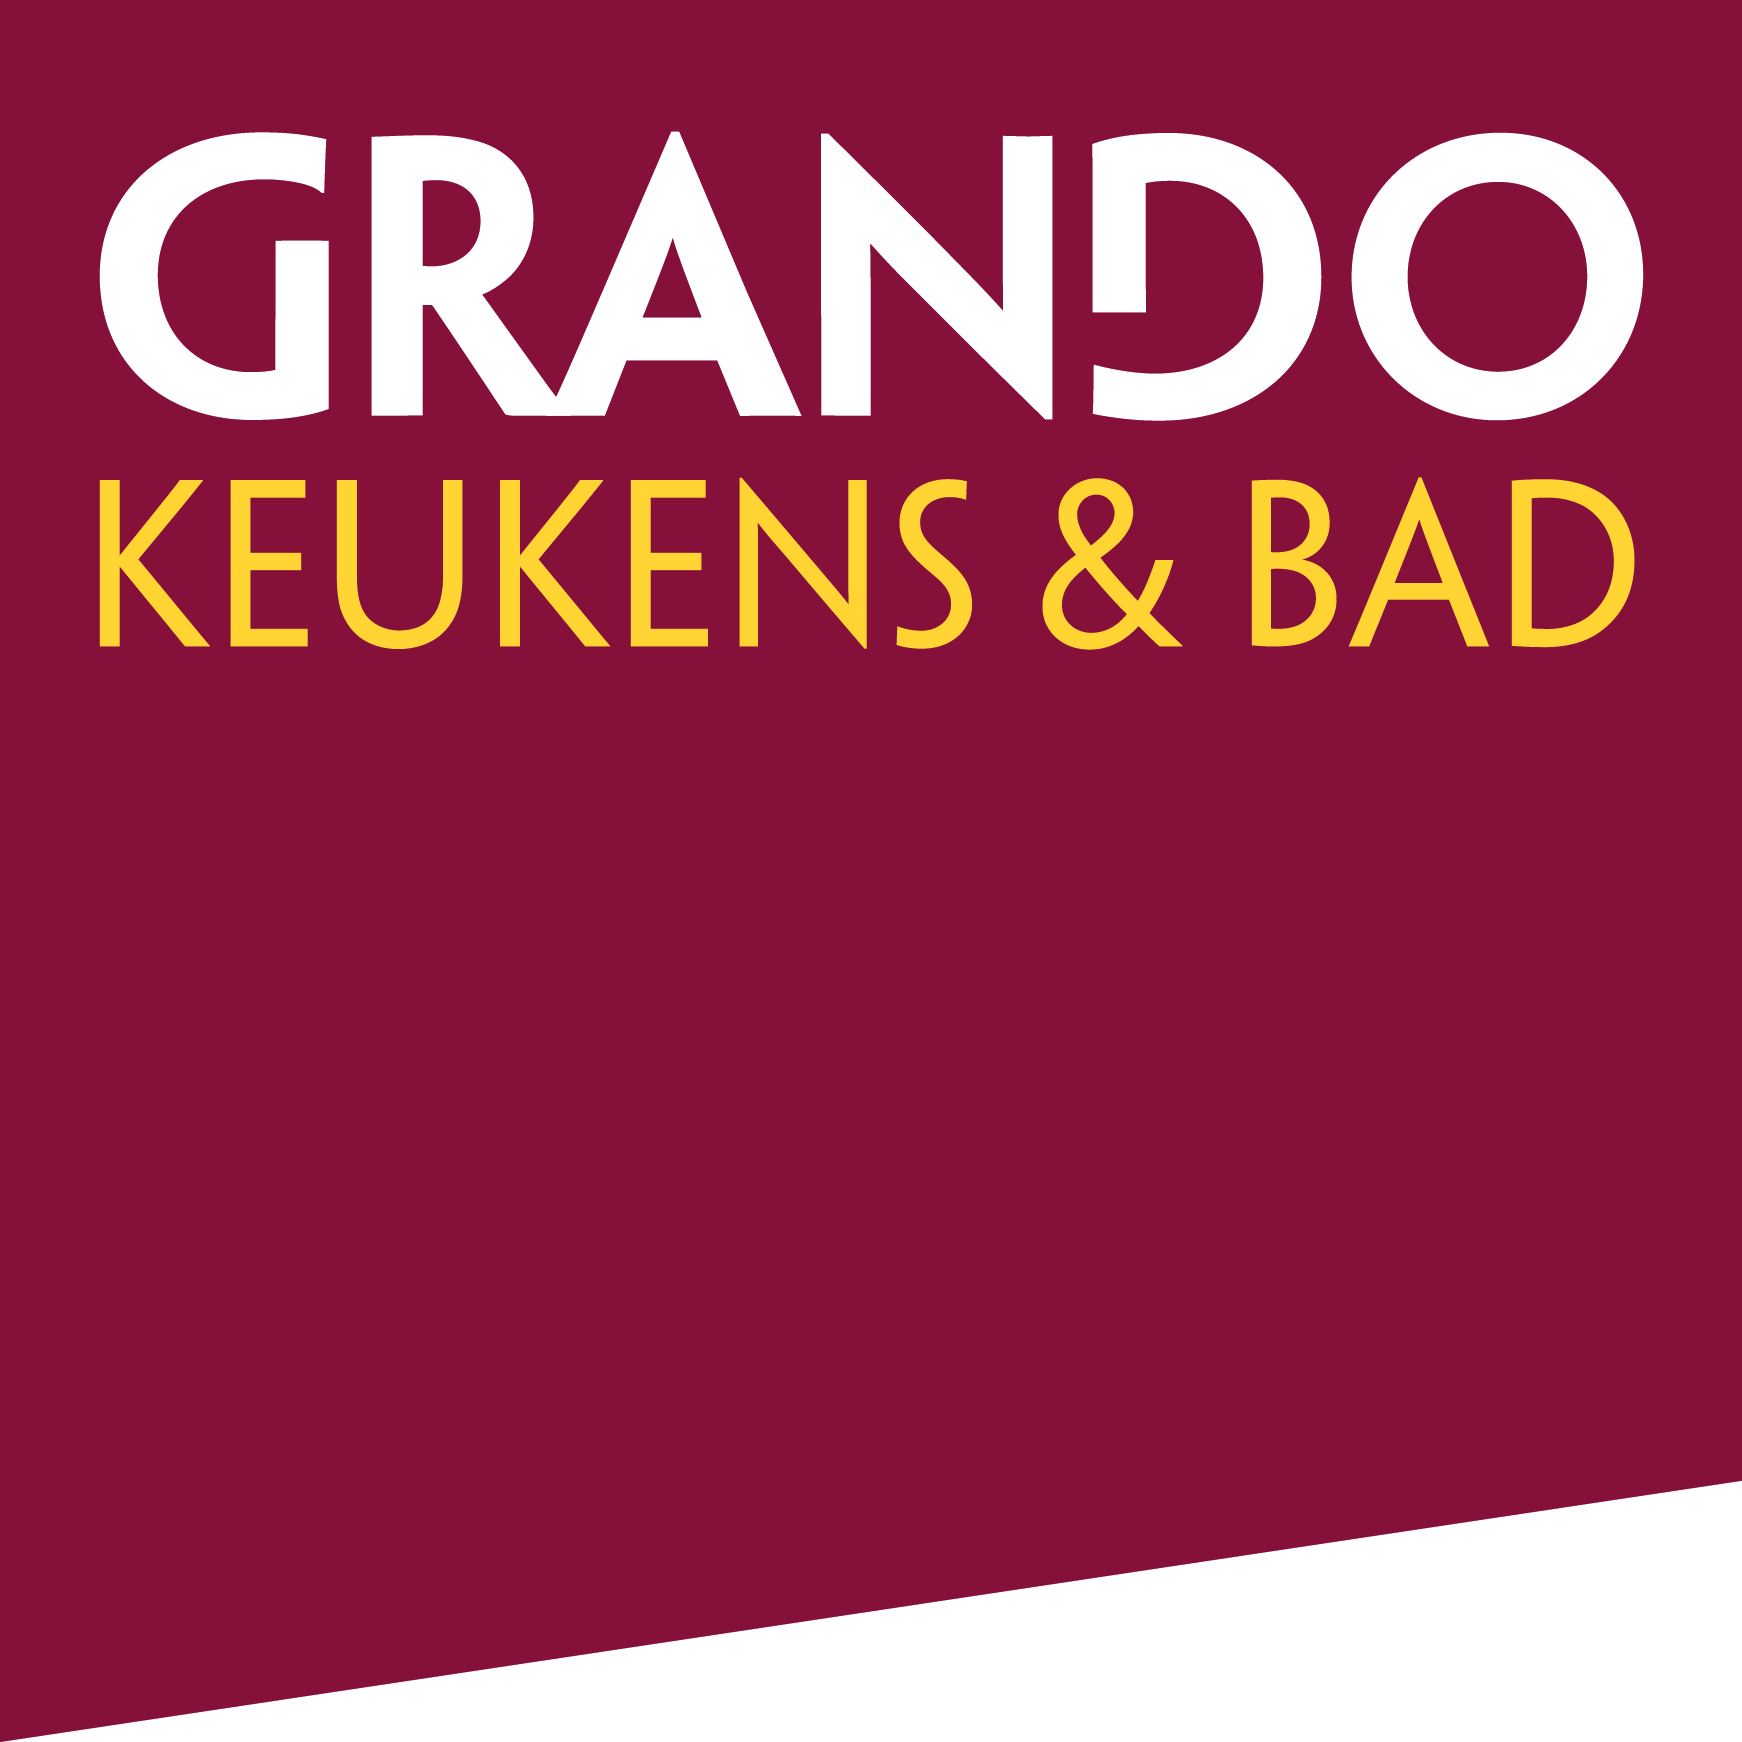 Grando Keukens & Bad Almere